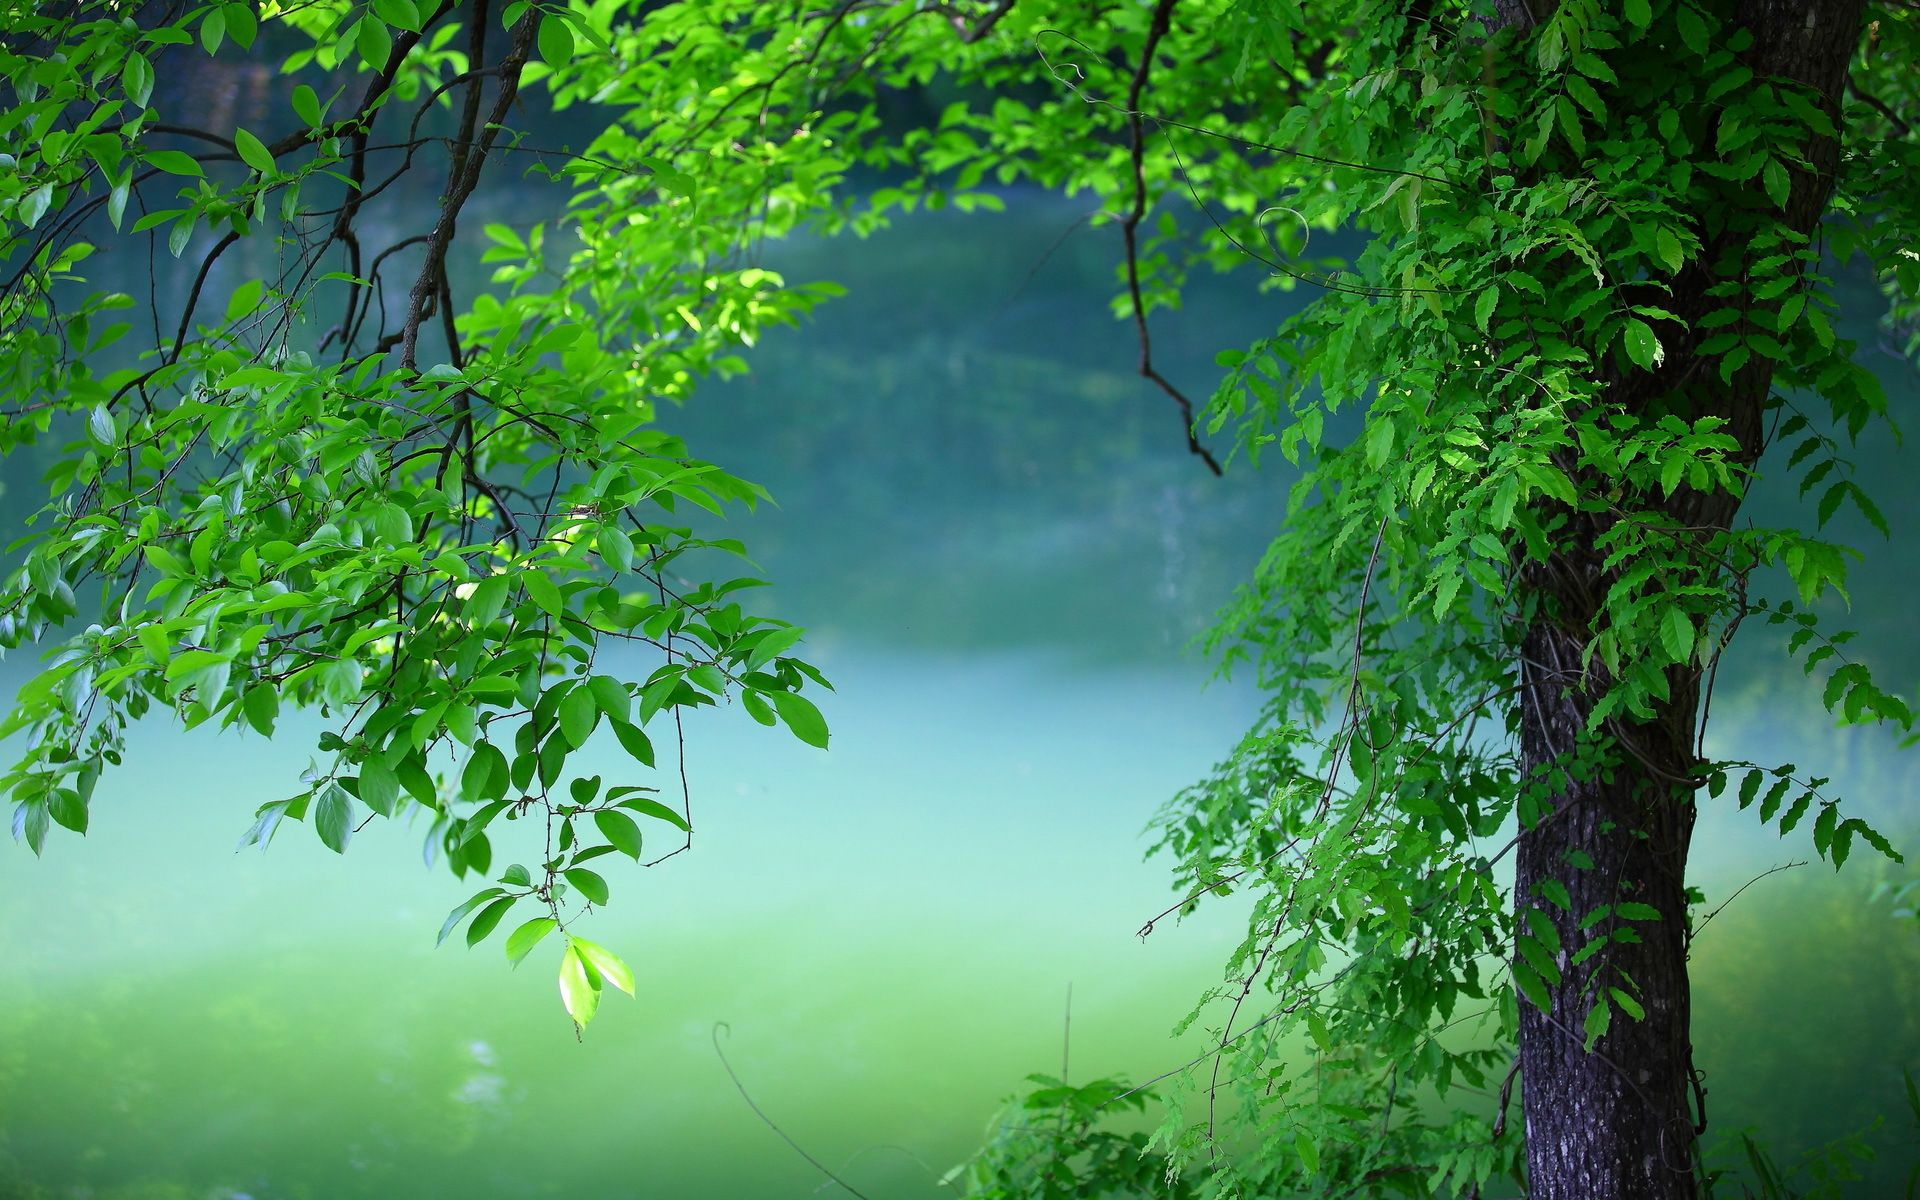 Summer Tree Green Leaves With Images Nature Wallpaper